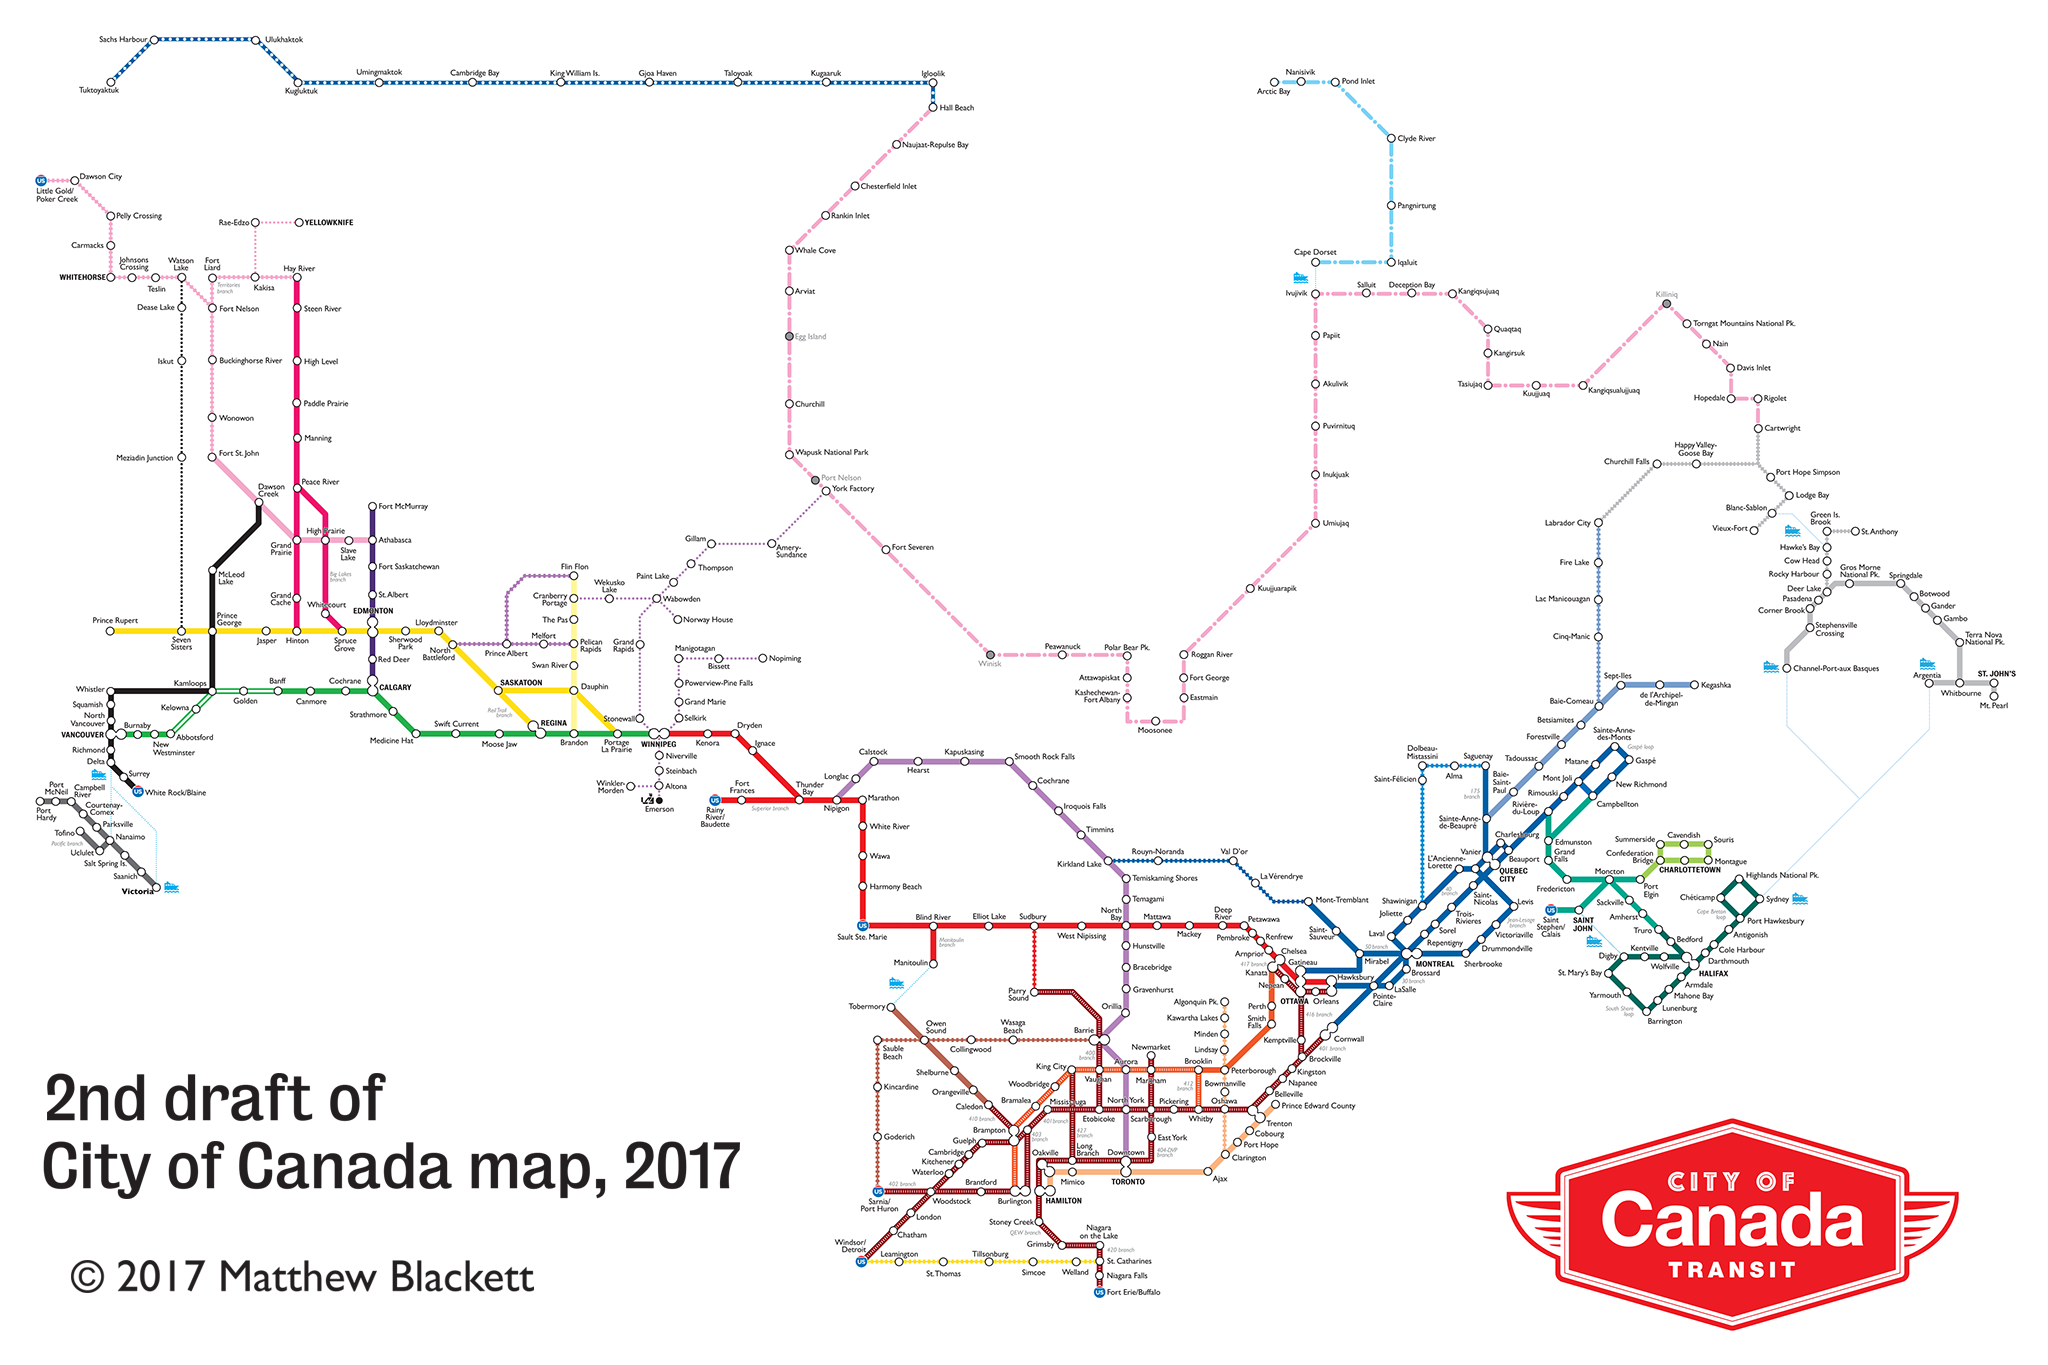 Toronto Subway Map Print.A Closer Look At The City Of Canada Transit Map Spacing National